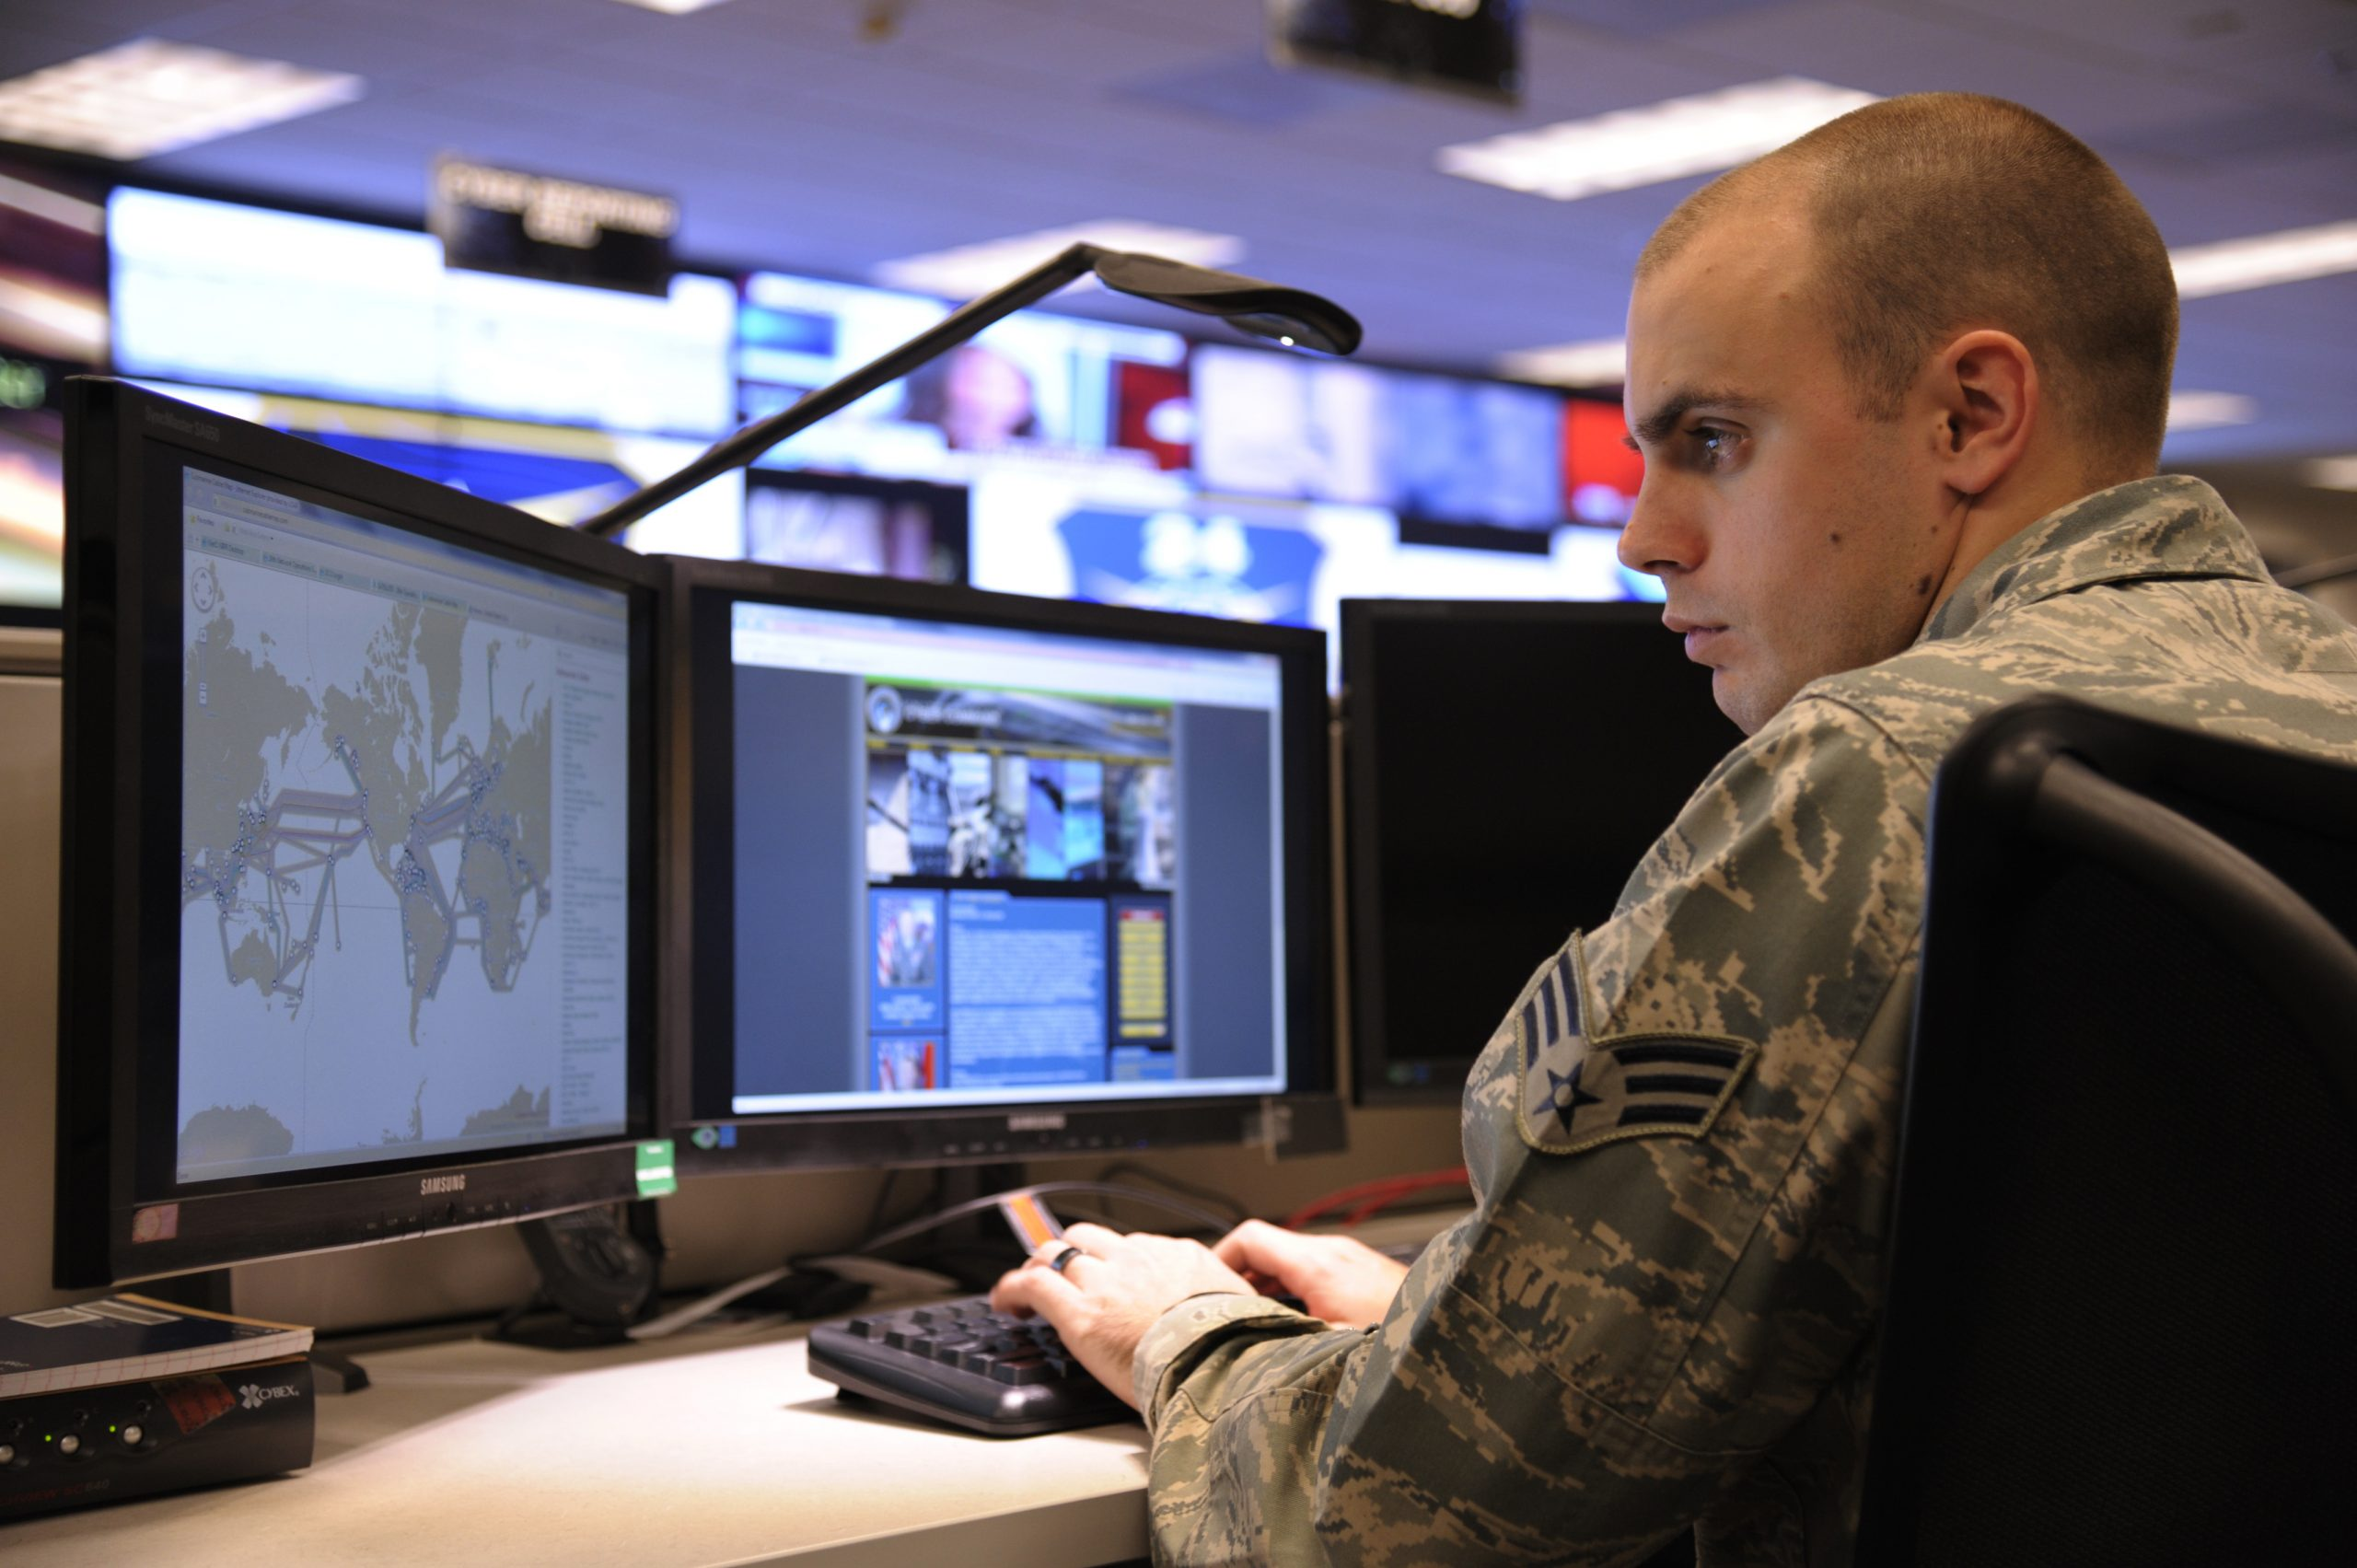 Nearly 1,000 cybersecurity experts—uniformed and civilian—are employed by the 24th Air Force within the Port San Antonio campus. Courtesy U.S. Air Force photo.